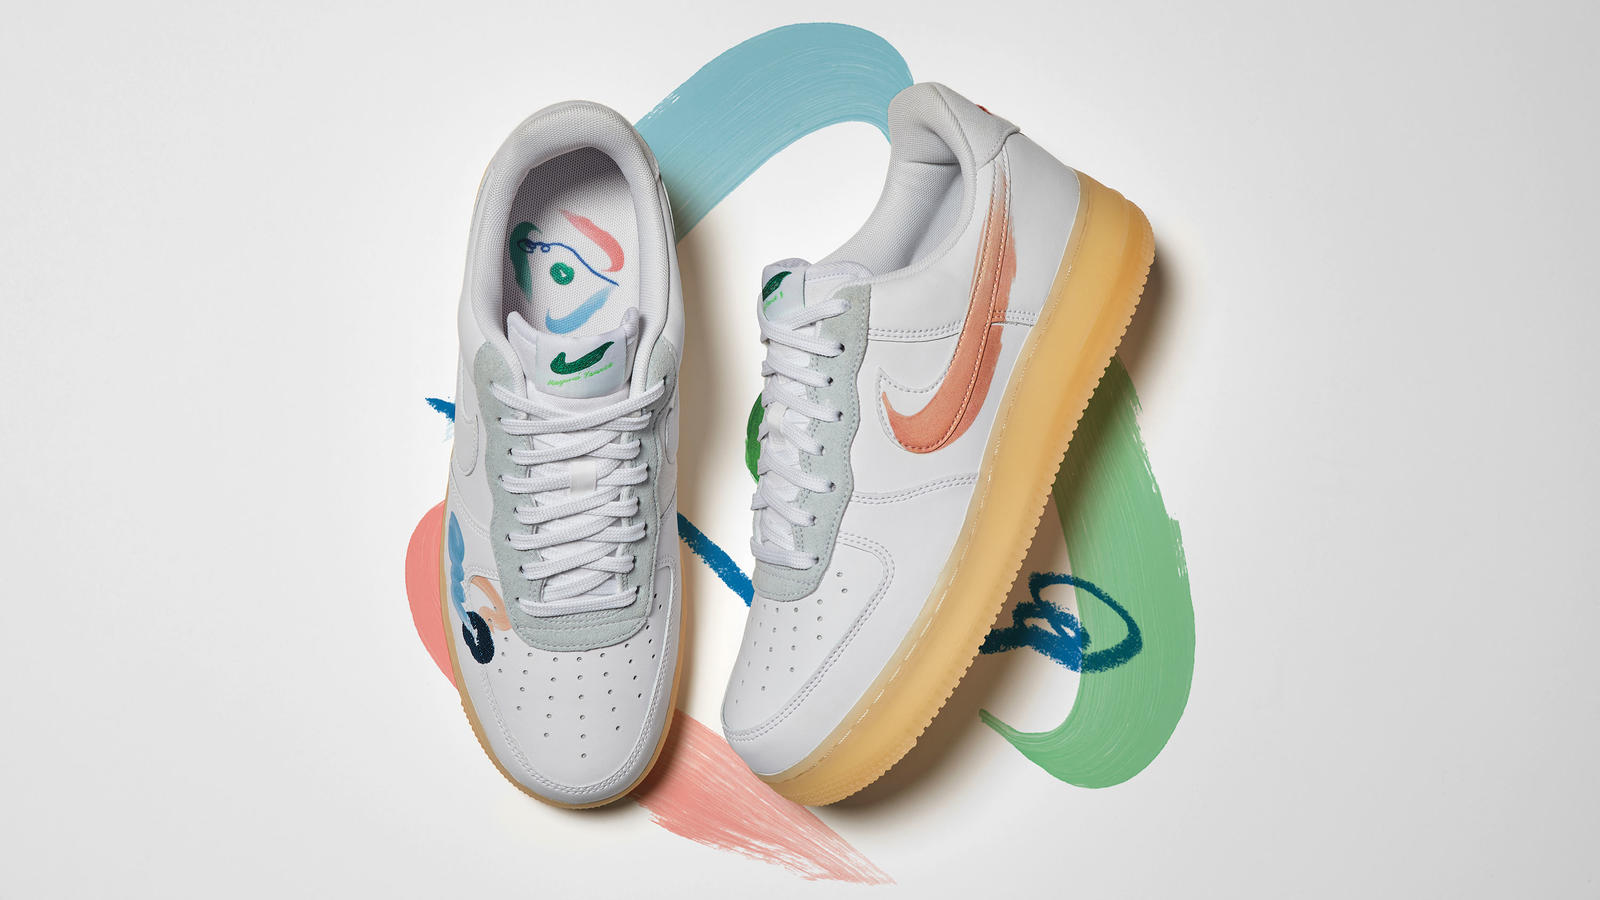 Nike Flyleather Collection Summer 2021 Air Force 1 Blazer Low Official Images Release Date 2